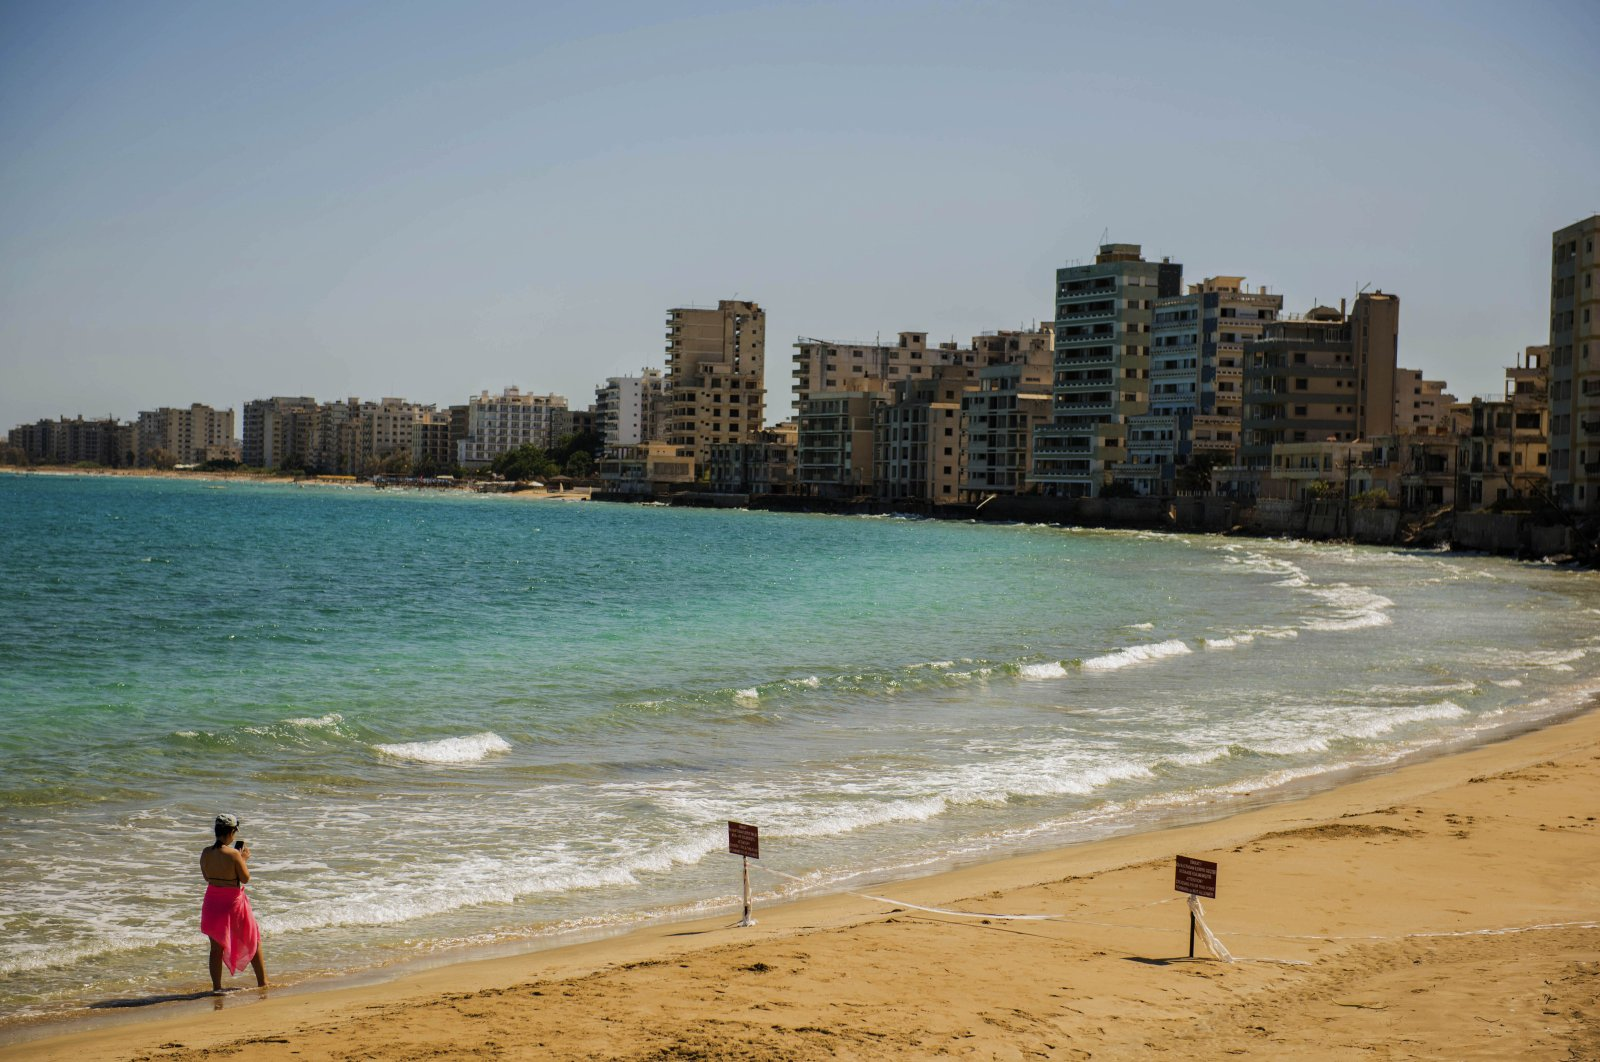 A woman checks her mobile phone as she strolls along an empty stretch of beach in the recently opened ghost suburb of Varosha, Turkish Republic of Northern Cyprus, Sept. 4, 2021. (AP Photo)